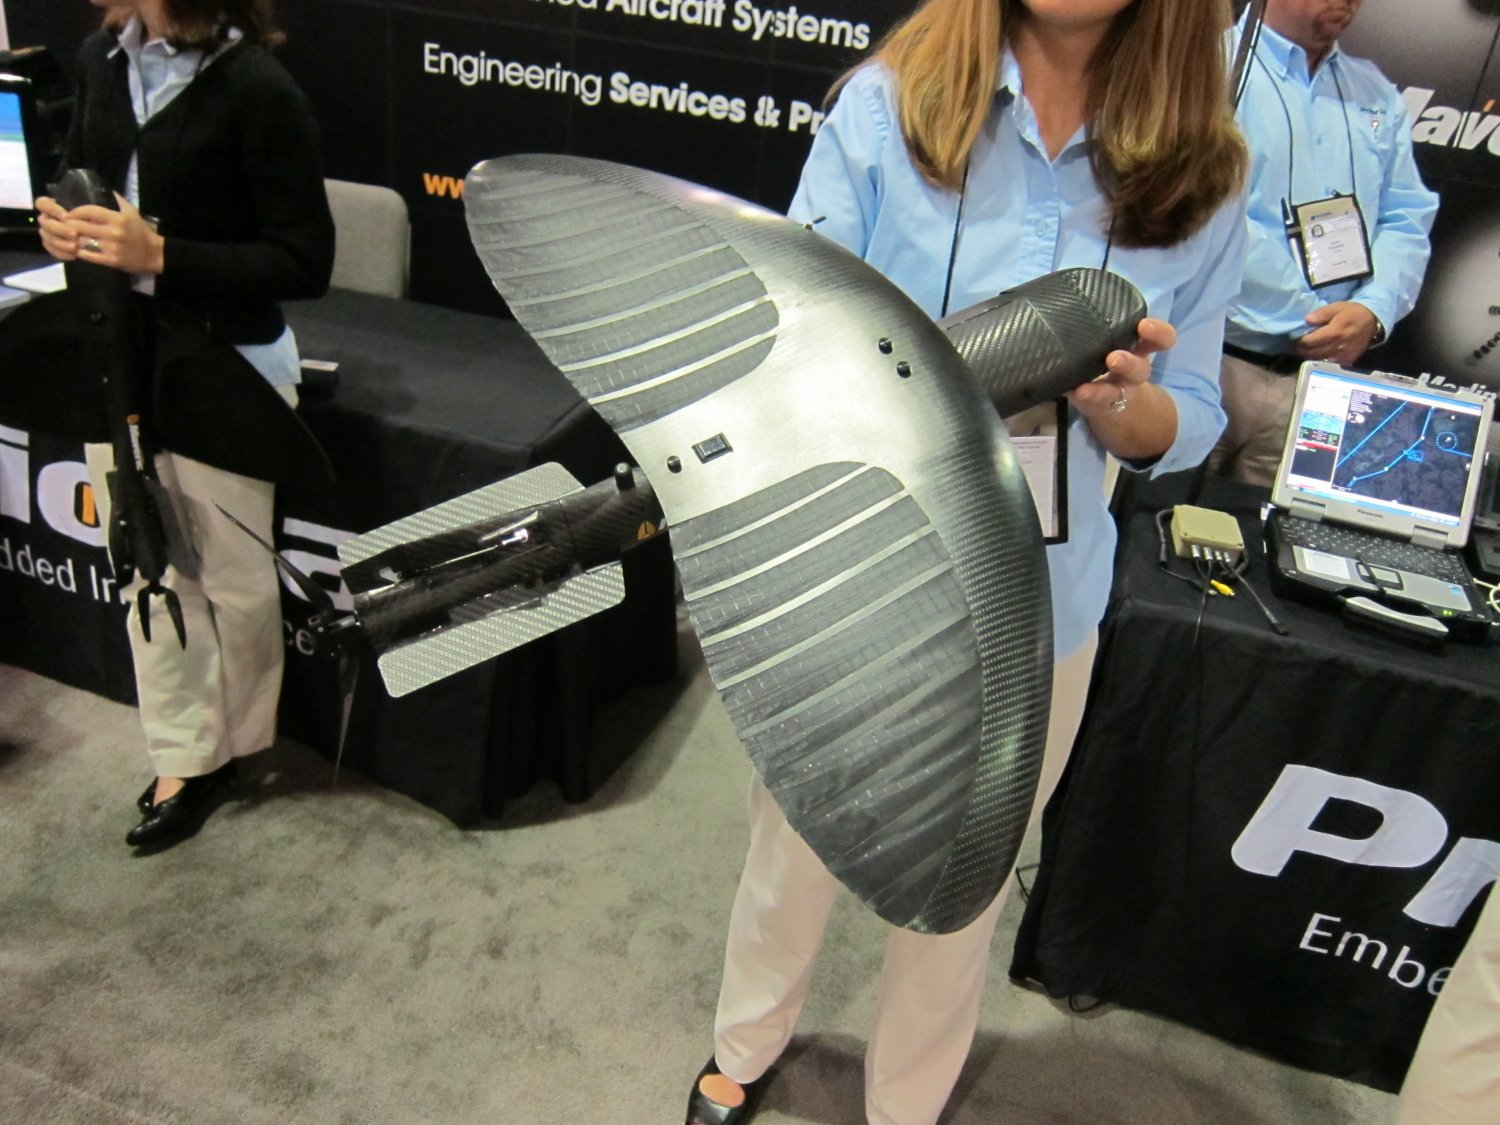 <!--:en-->Prioria Robotics Maveric Flexible-Wing Mini-UAS (Mini-Unmanned Aircraft System) at SOFIC 2011: Manpackable, Throwable SUAV (Small Unmanned Aerial Vehicle) with Flexible/Bendable Wing! (Photos and Video!) <!--:-->